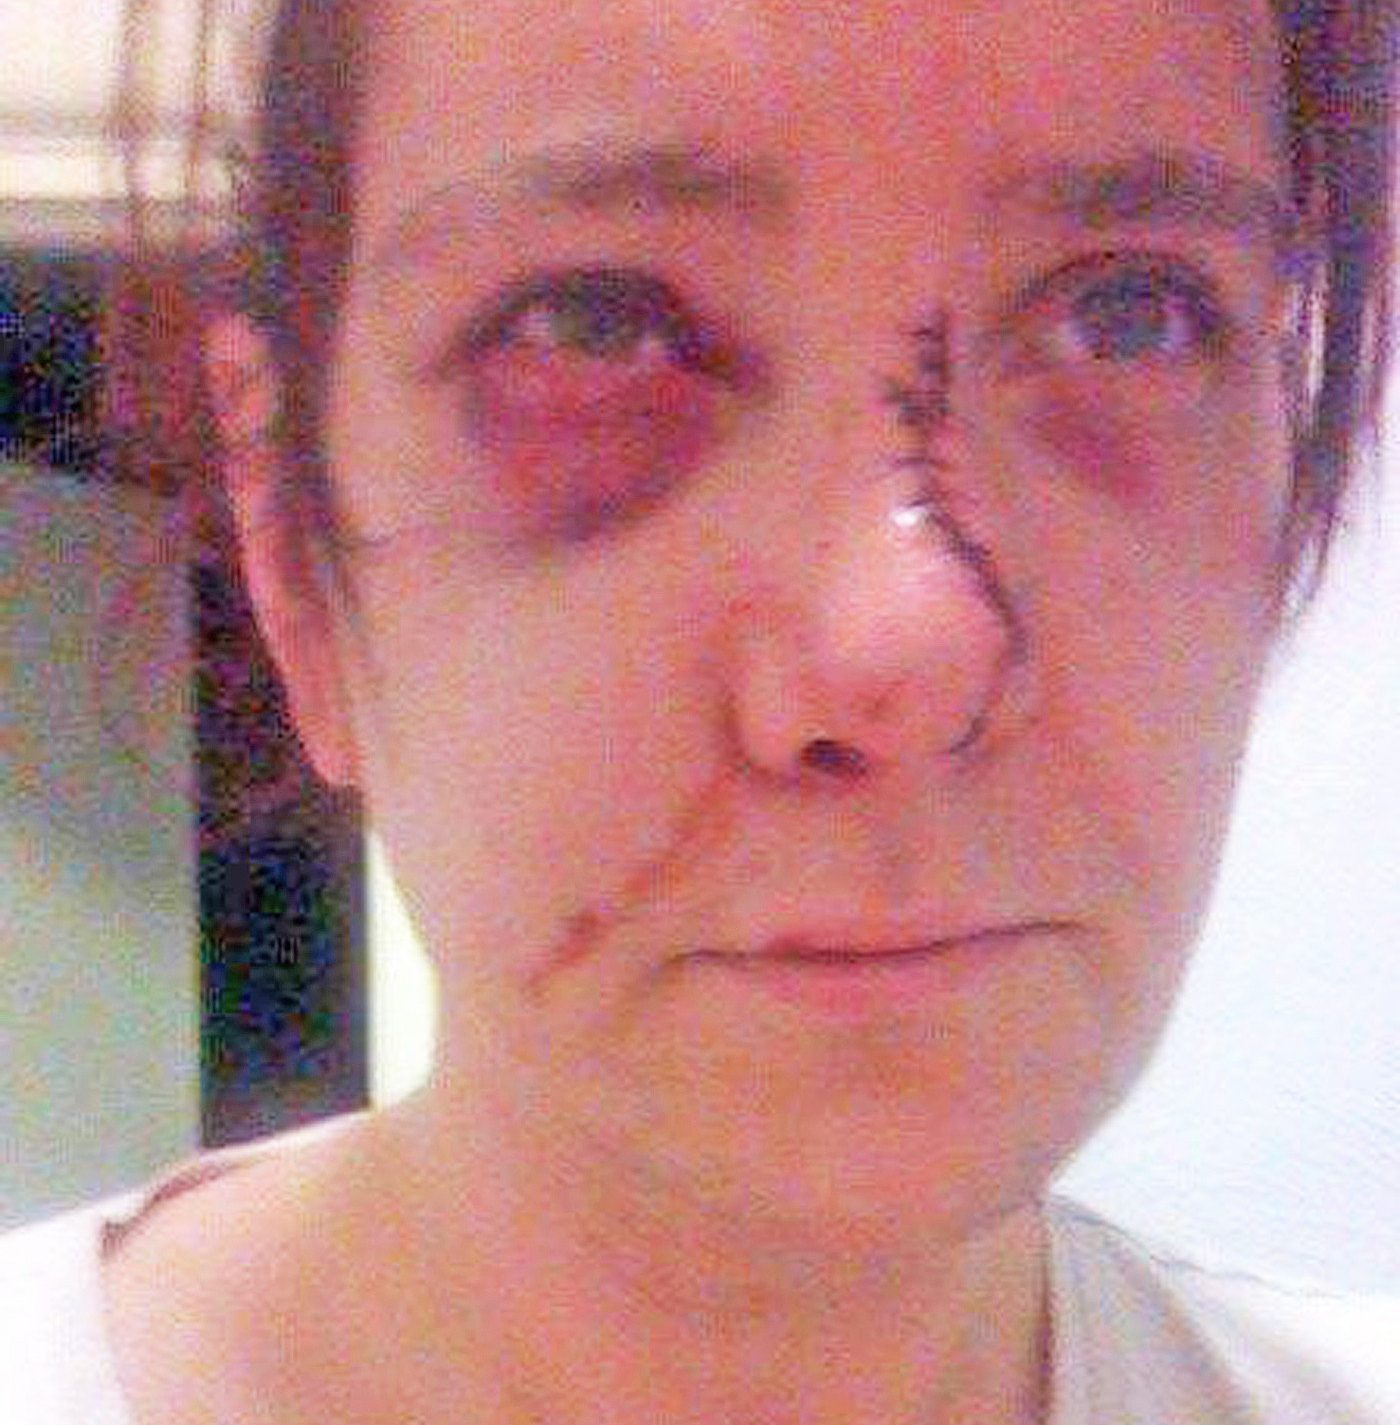 Pic by Hotspot Media -WOMAN REVEALS HOW EX BRUTALLY BEAT HER BUT ESCAPED PRISON - IN PIC - Justine Wood, 40, of Colne, Lancashire, with stitches in her broken nose after an attack by Damian in 2014.- A woman whose former partner repeatedly and brutally beat her up 'like a wild animal' has spoken of her shock at how he escaped prison. Justine Wood, 40, of Colne, Lancashire, was left scarred for life after her ex broke her nose in a series of sickening attacks that left her fearing she???d be killed. The mum-of-one also suffered a fractured jaw, an inch-long gash on her head, and has lost feelings in two of her fingers after Bridge bit her in four separate beatings. Shockingly, despite being found guilty of assault by beating and assault occasioning actual bodily harm, in June 2017 Bridge was handed an 18-month suspended sentence and an 18-month restraining order. ...SEE HOTSPOT MEDIA COPY 0121 551 1004